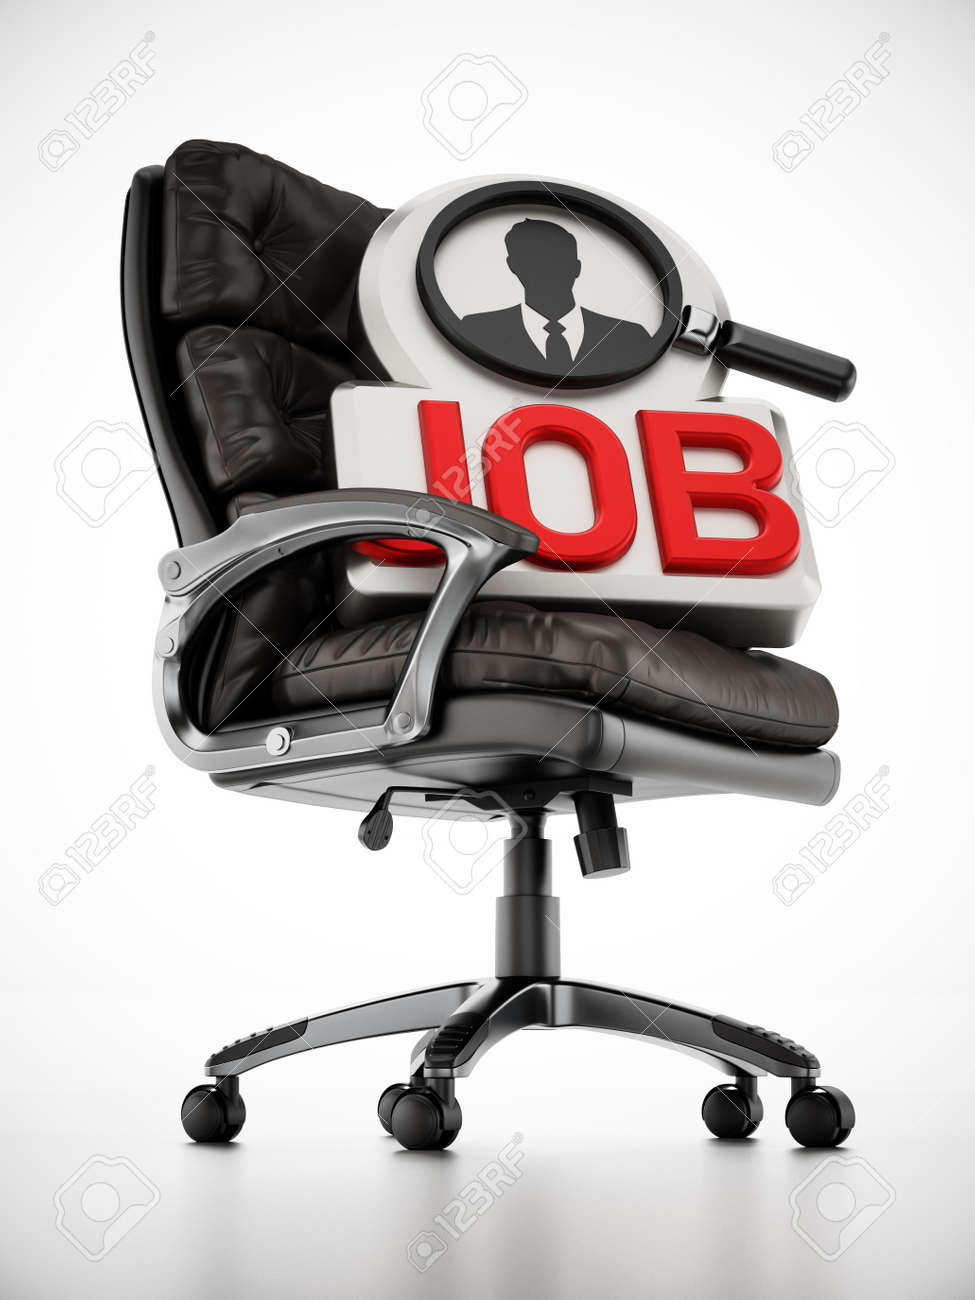 Black leather office chair with job text and businessman symbol. 3D illustration. - 171795851